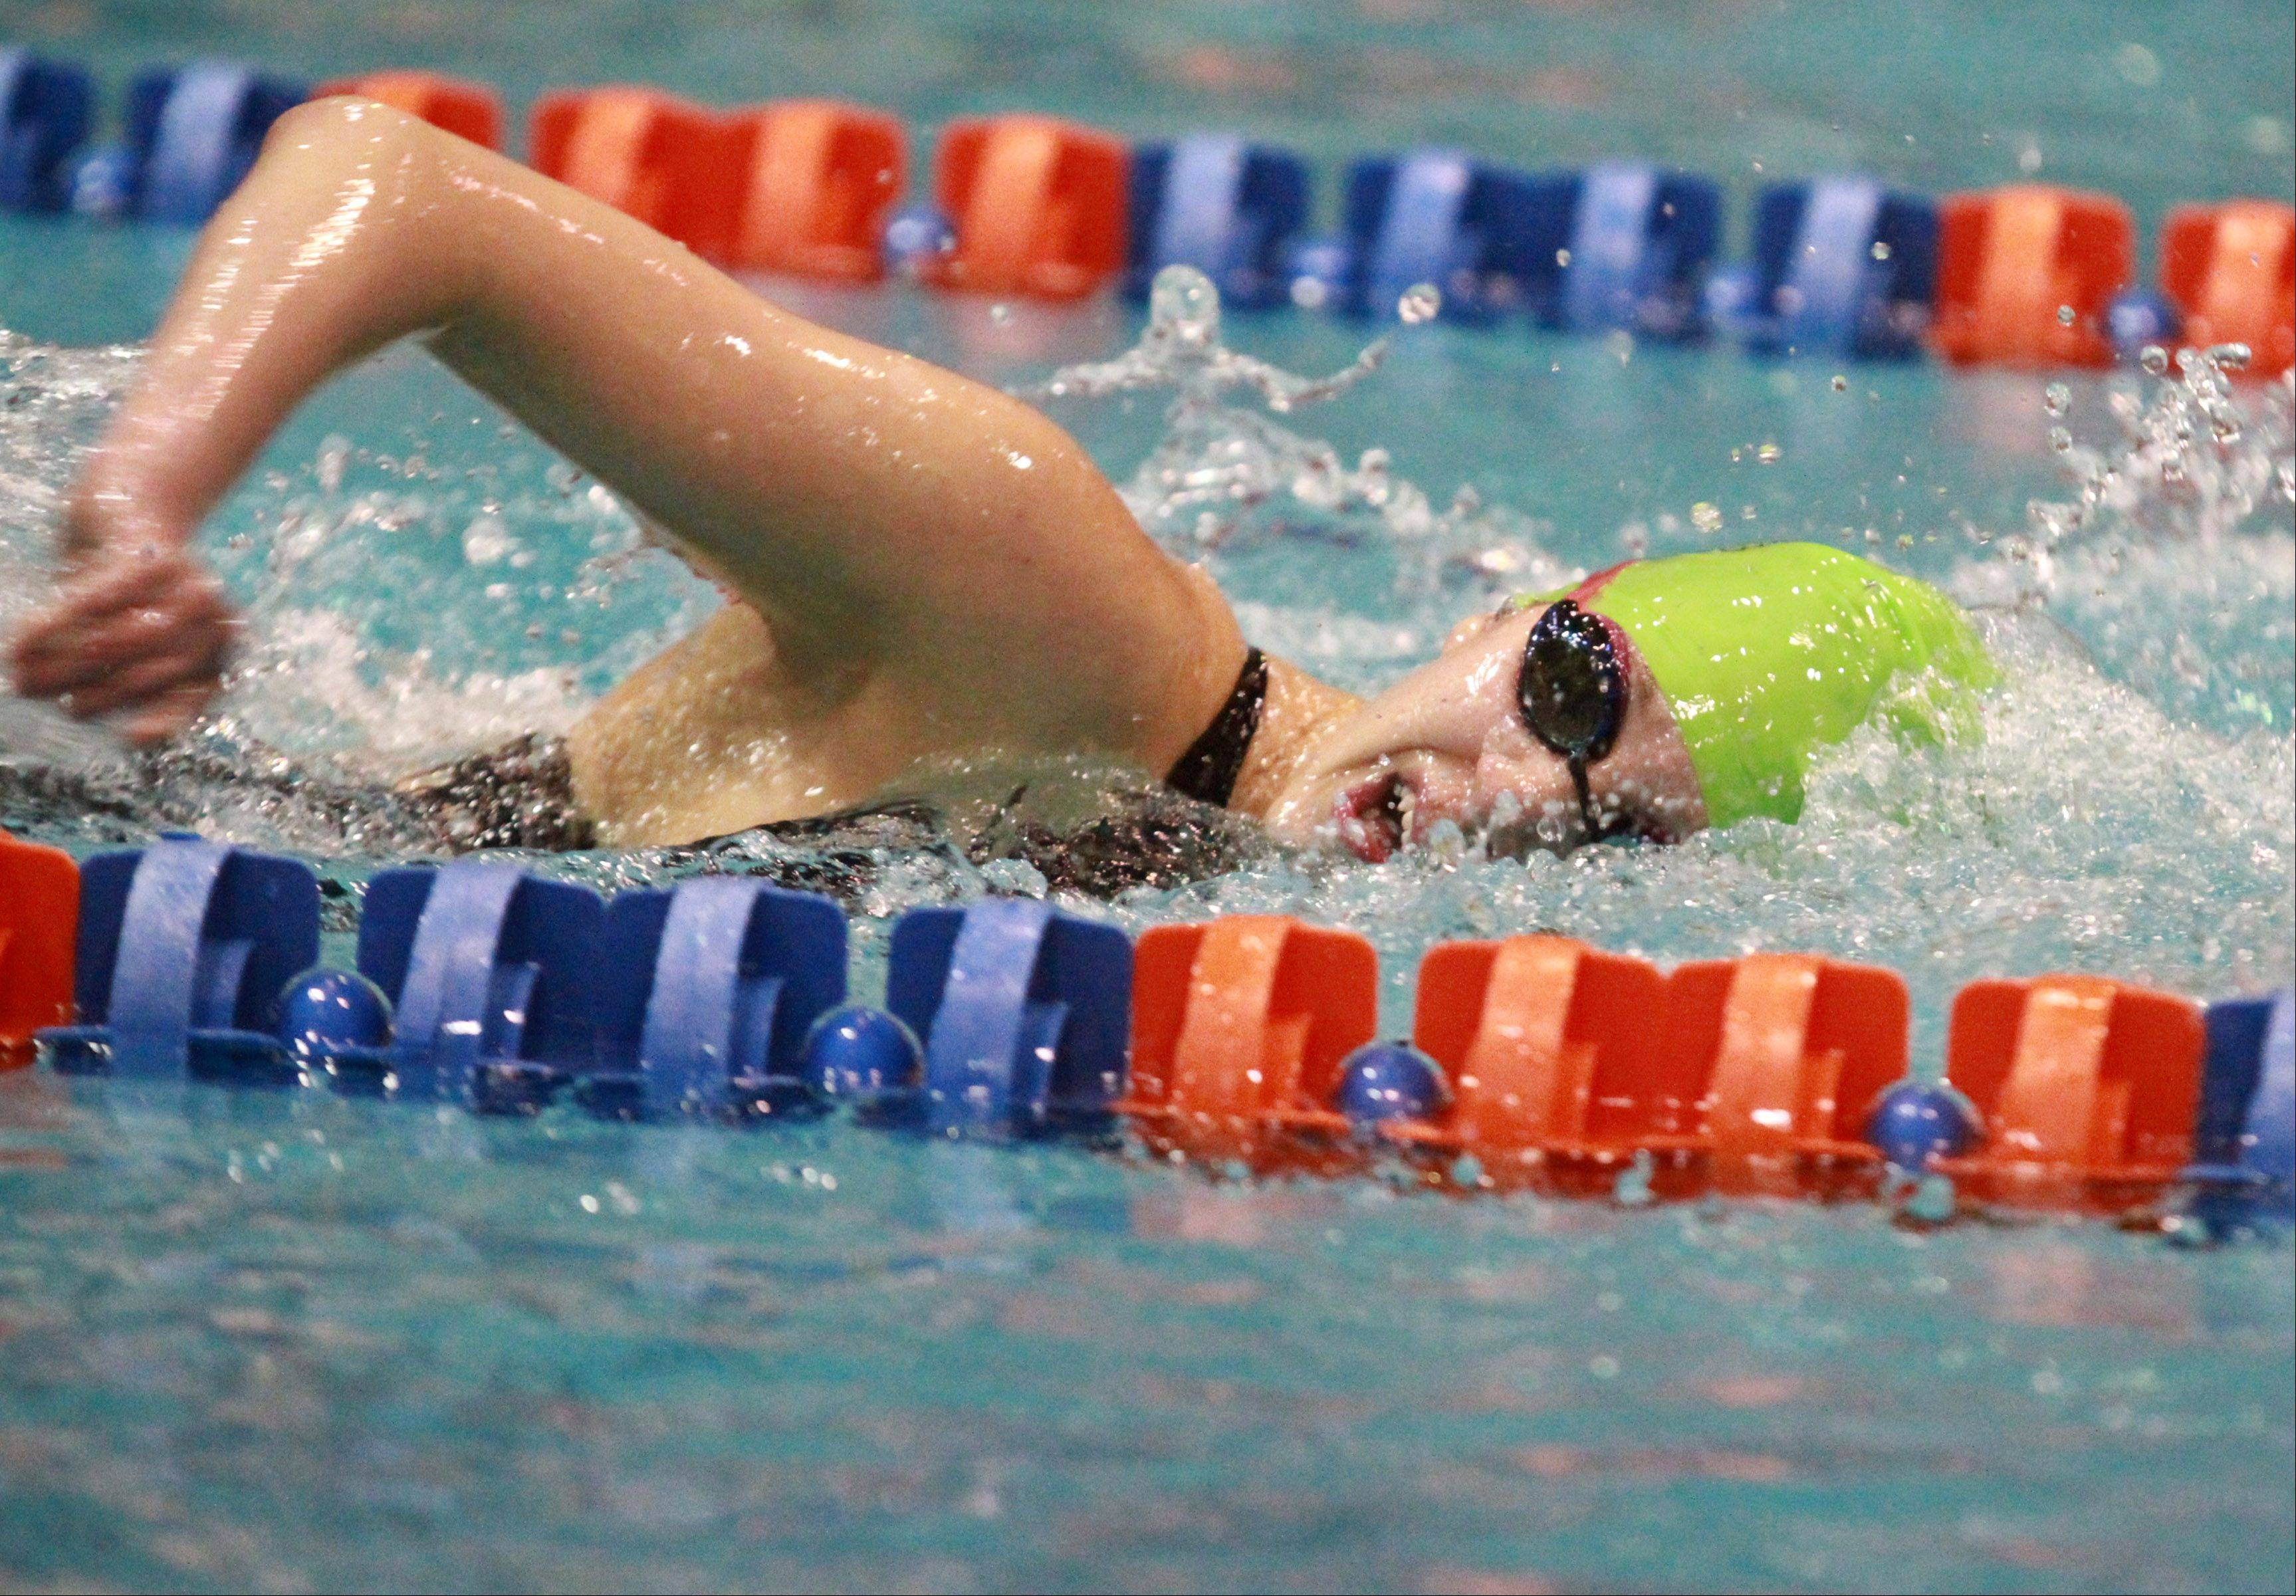 St. Charles East's Mary Snyder placed eleventh in the 200-yard freestyle at the IHSA state championships in Evanston on Saturday.